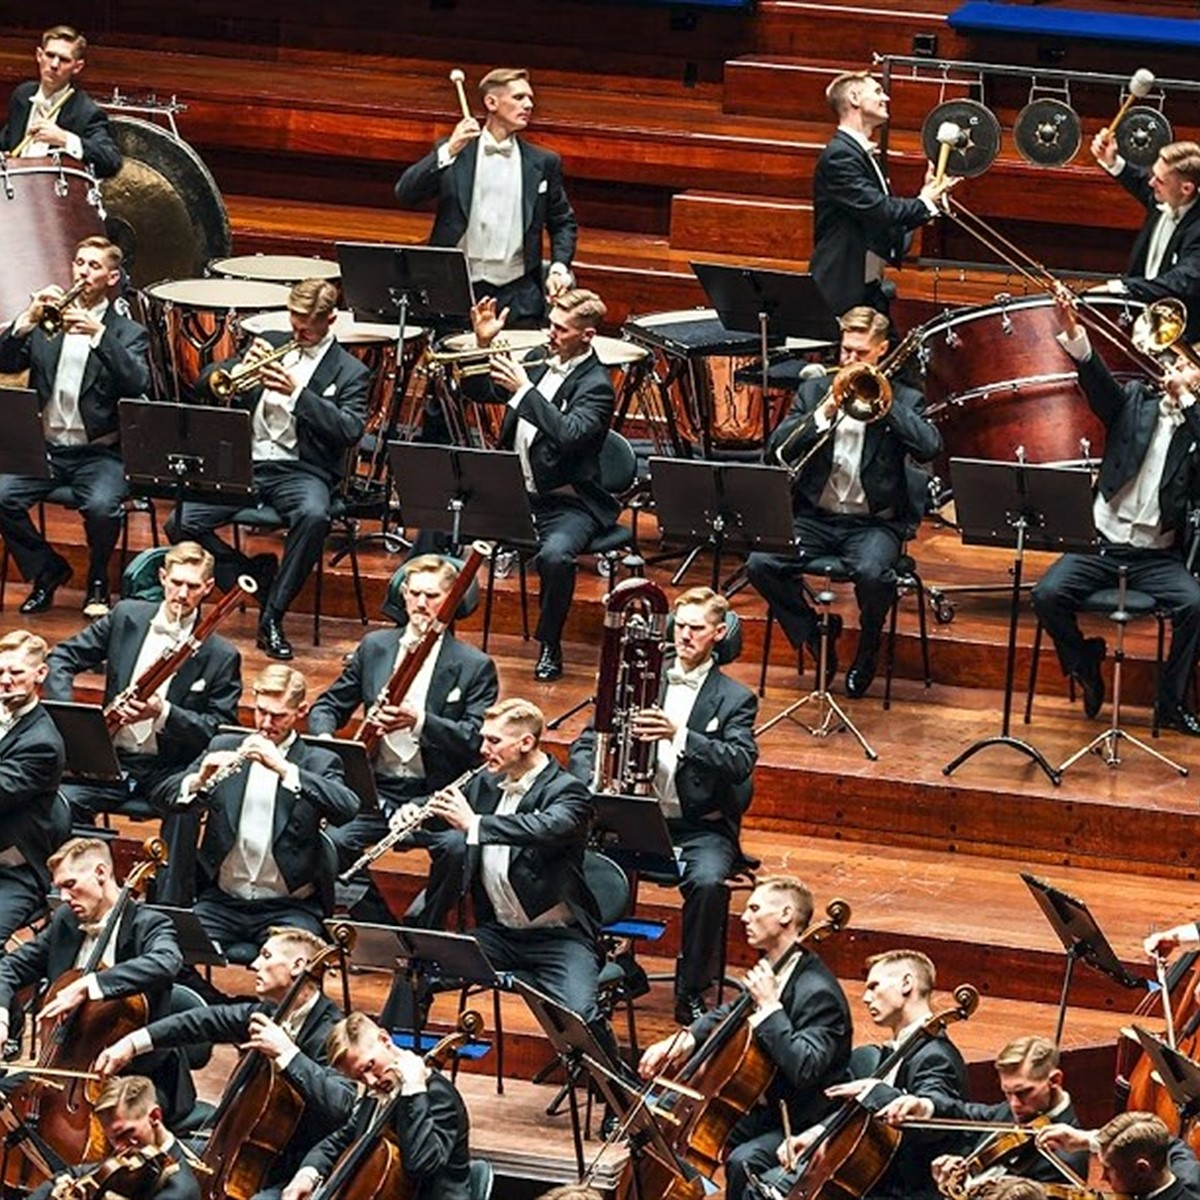 Photographer creates picture of 100-man orchestra… with the